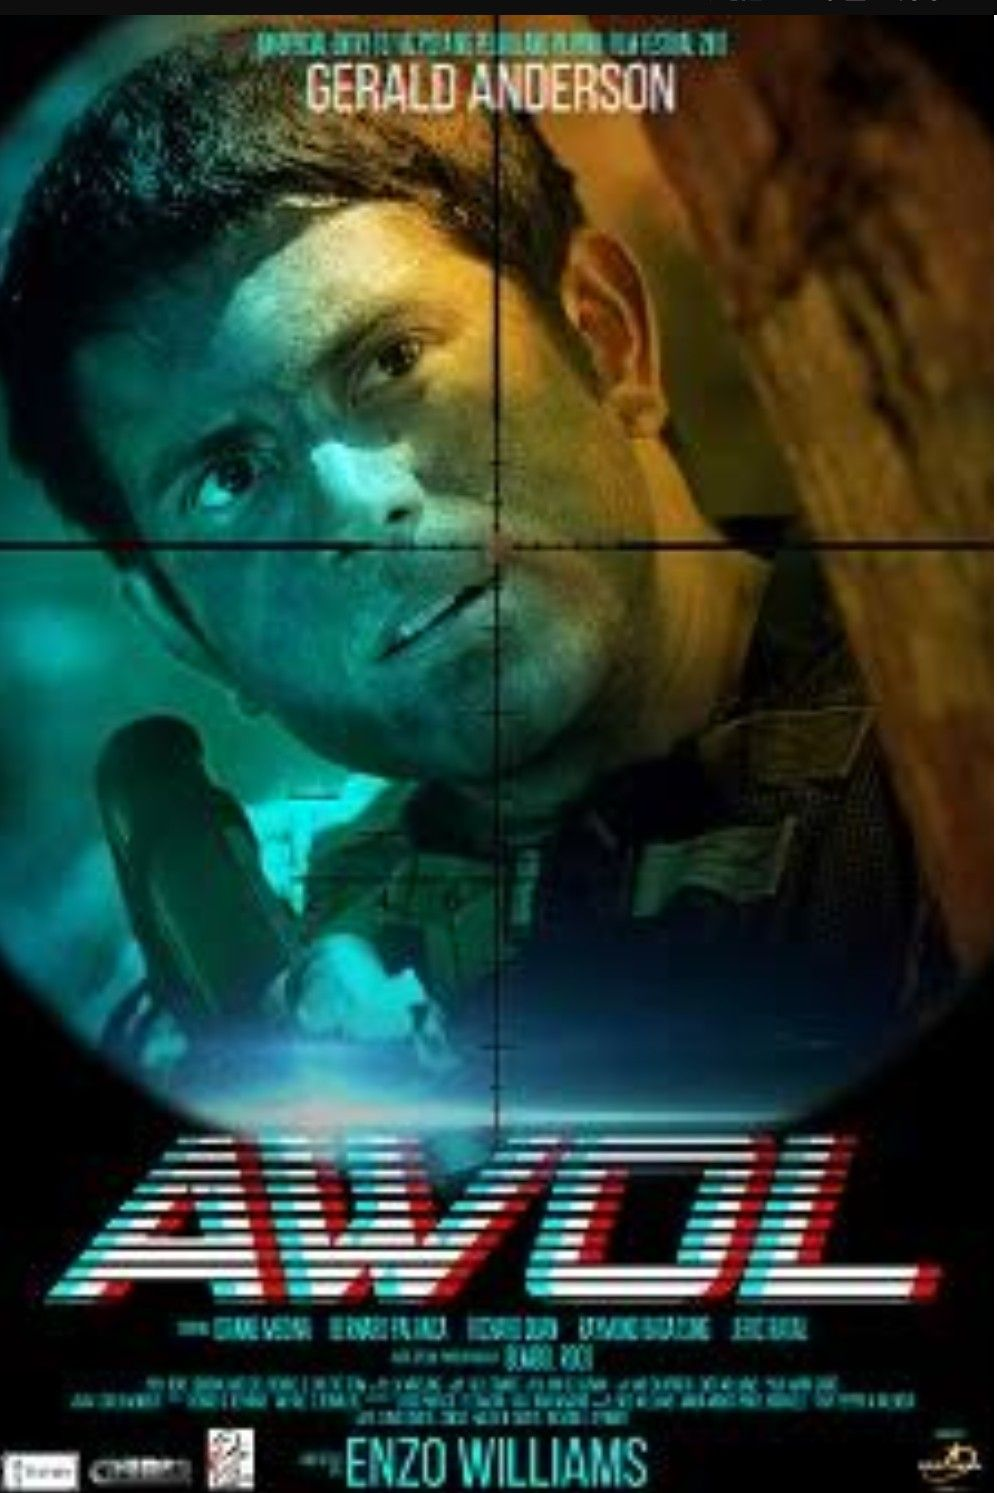 Awol A Filipino Action Film Starred By Gerald Anderson Full Movies Online Free Free Movies Online Streaming Movies Online